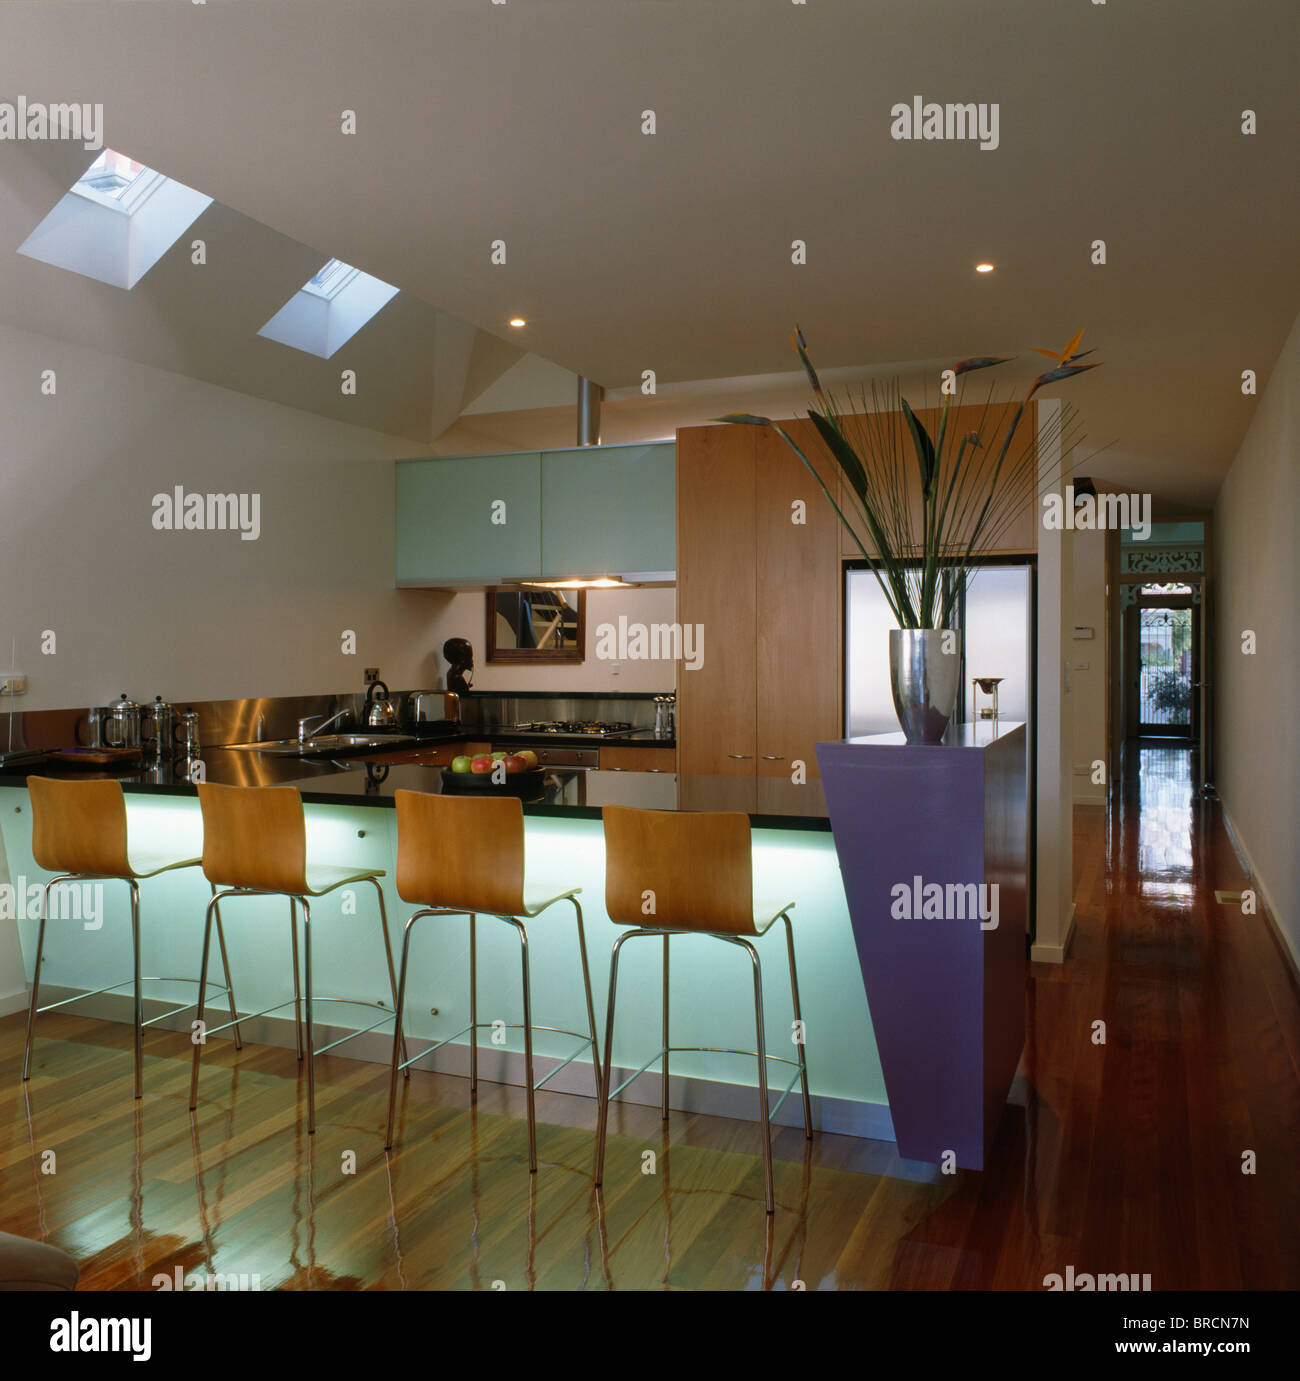 Stools at breakfast bar with lighting behind opaque panel in ...